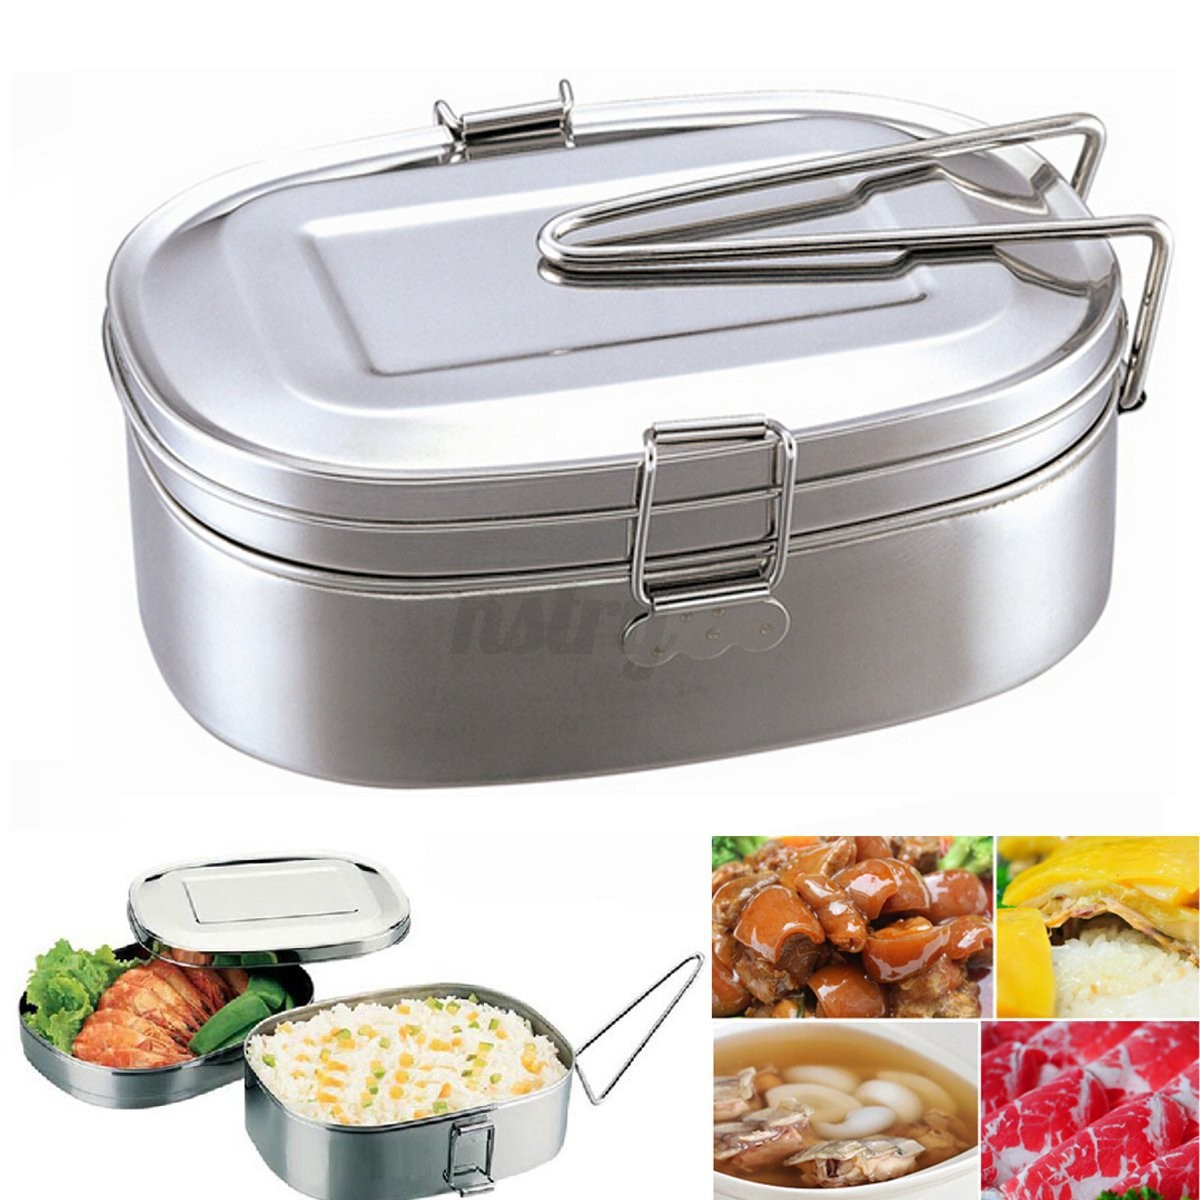 au 2 layer stainless food picnic container handle case bento carry lunch box ebay. Black Bedroom Furniture Sets. Home Design Ideas